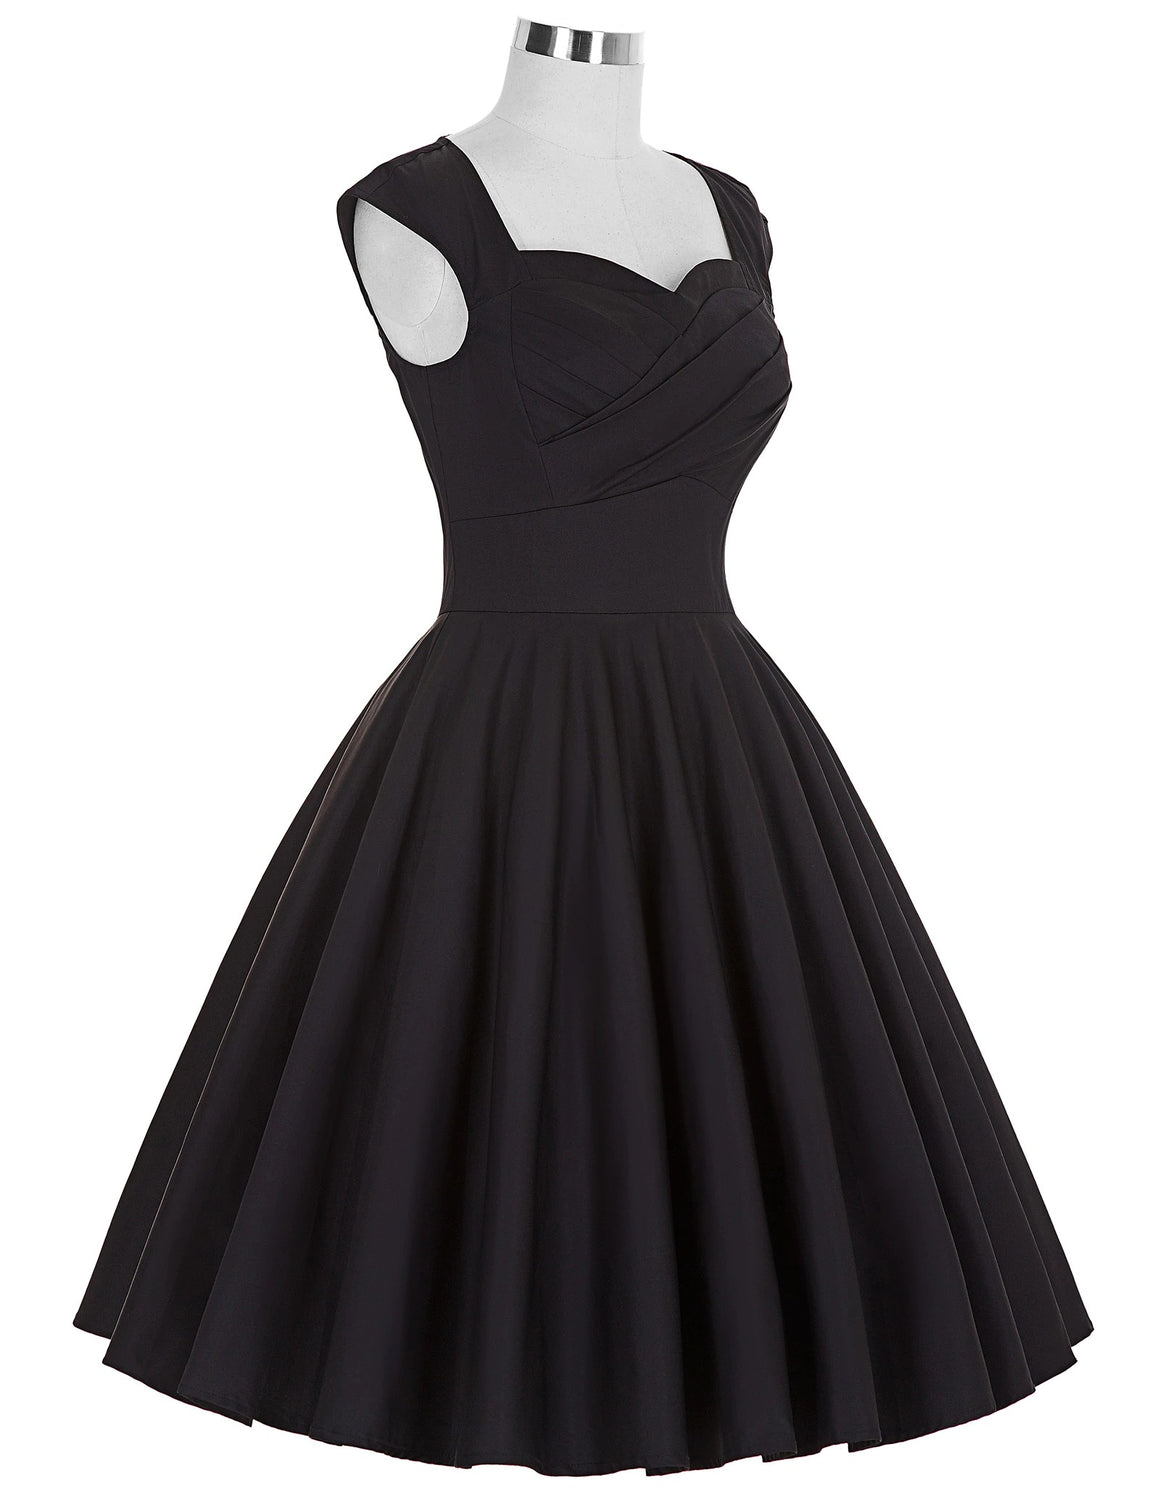 Now on Sale the Belle Dress in Black by Ponyboy Vintage Clothing!